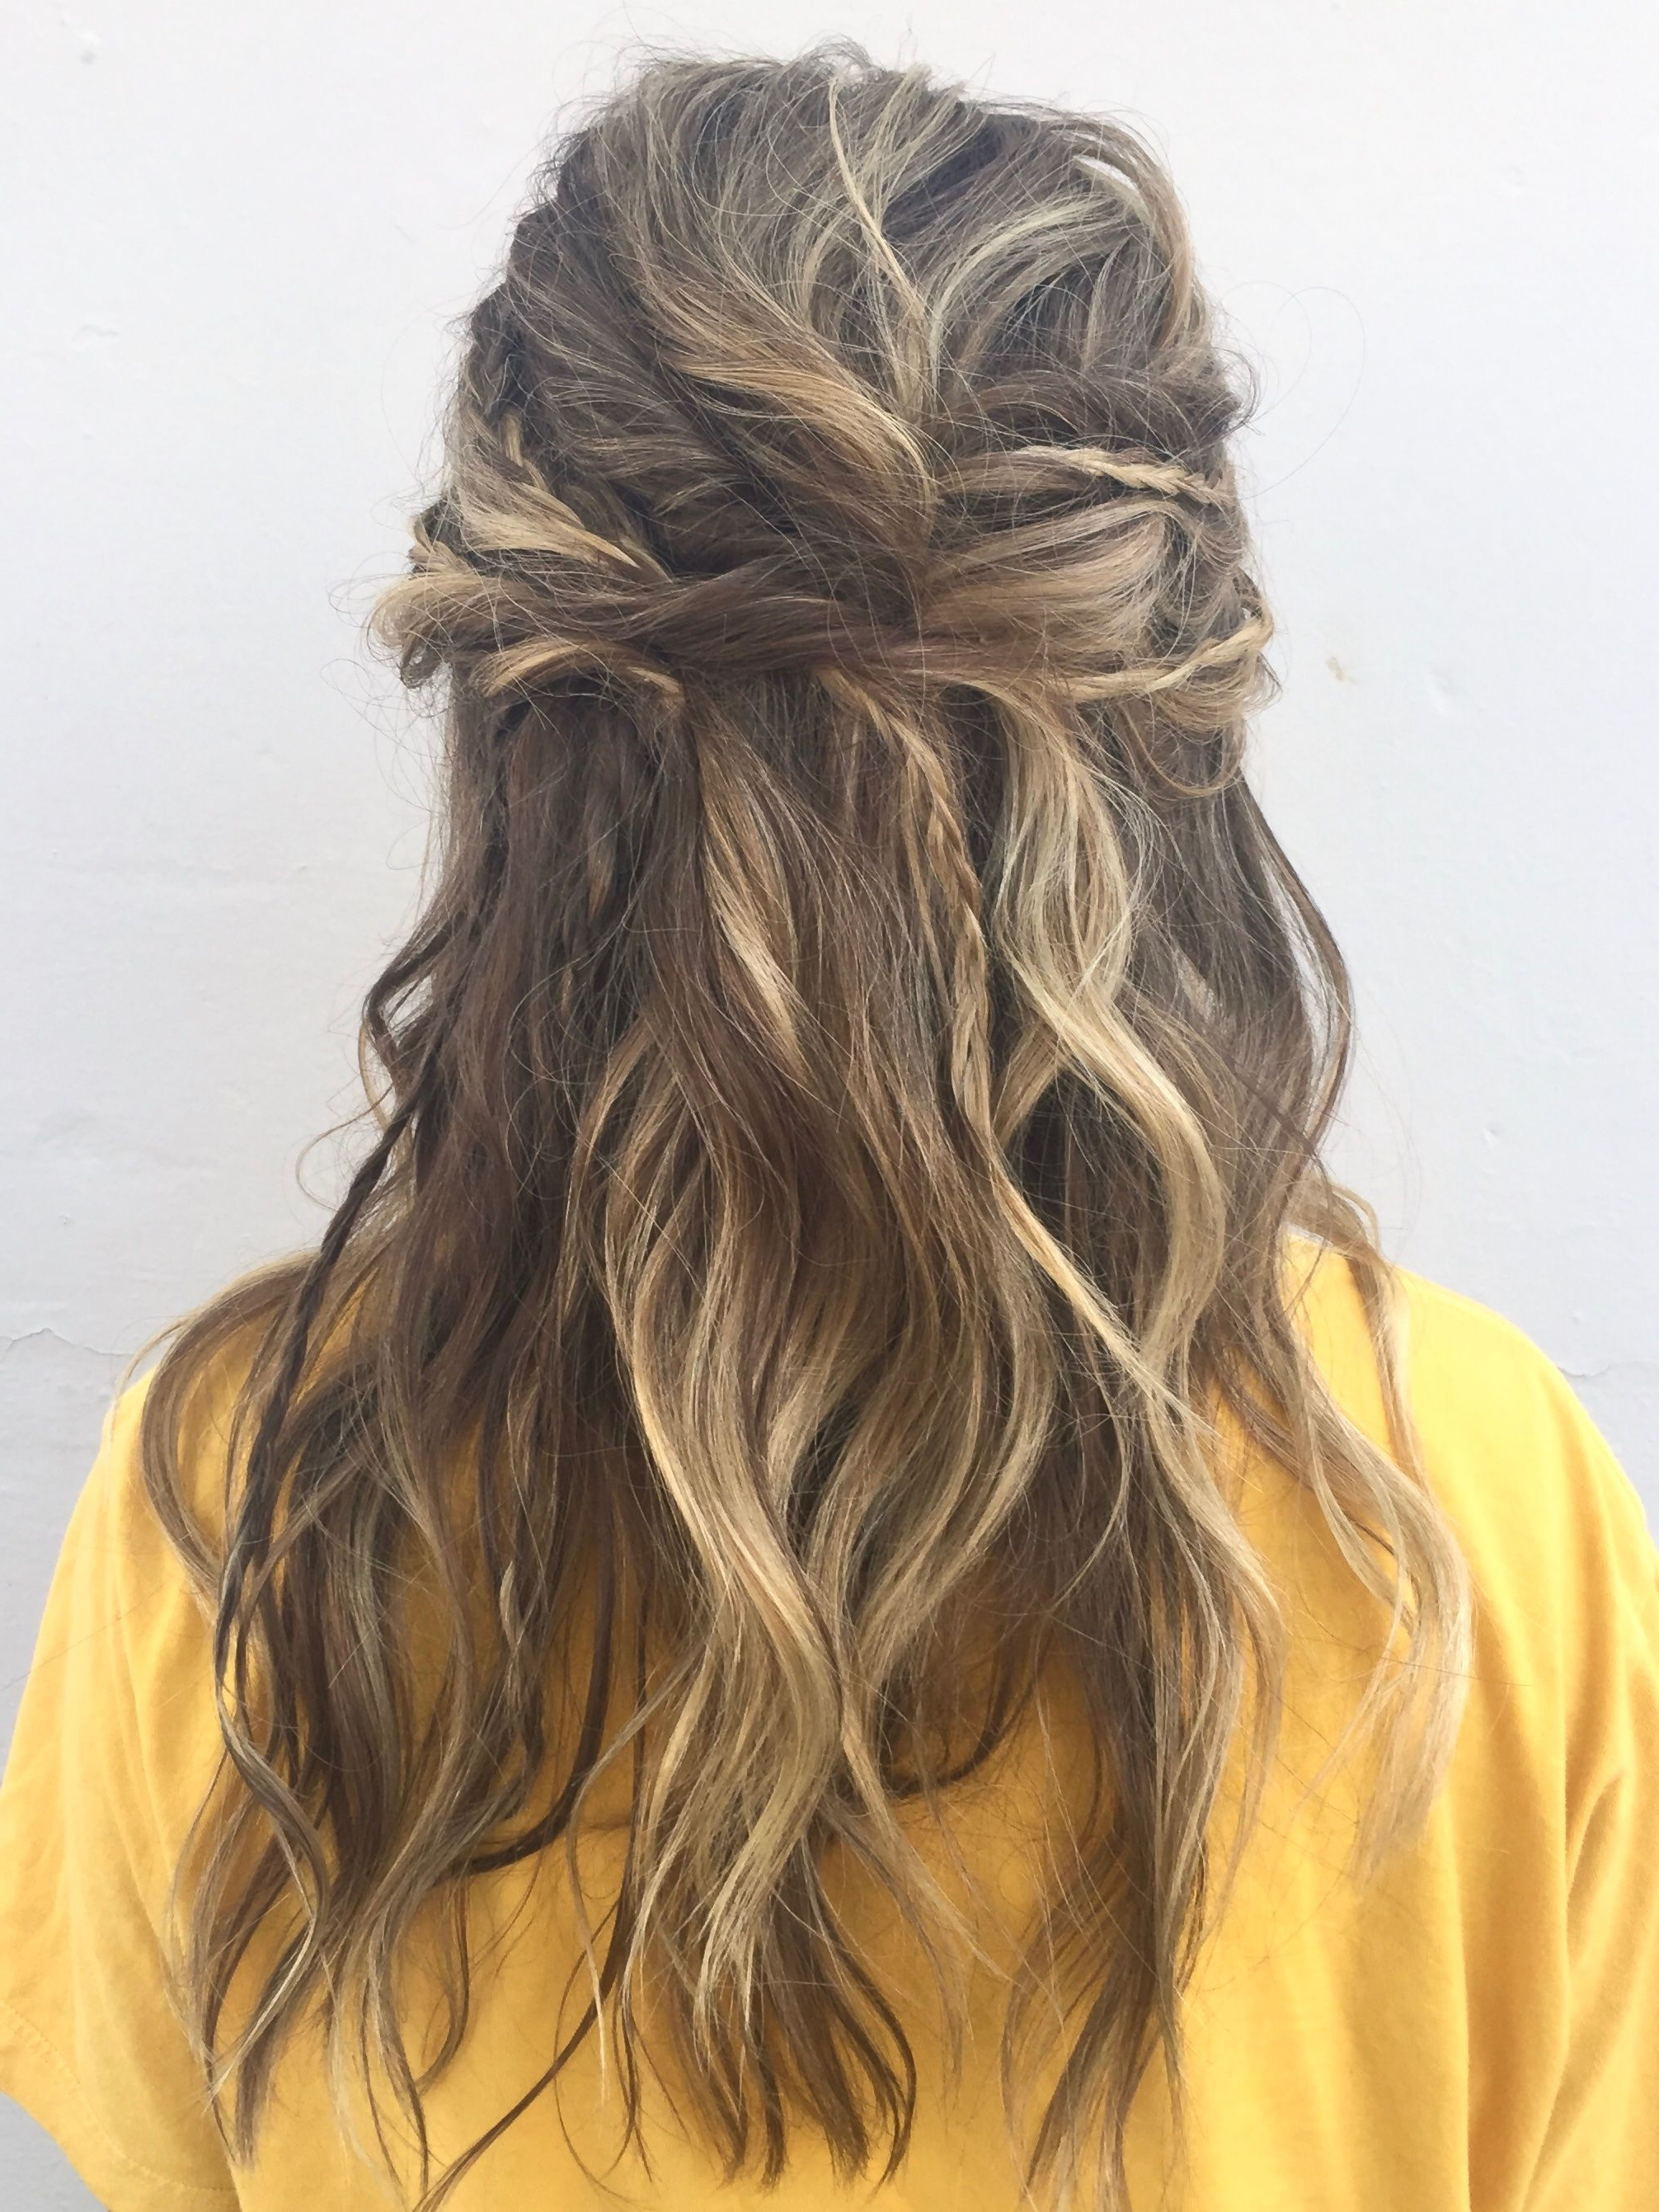 Boho Hair Prom Updo With Braids And Twists And Messy Waves Half Up Within Current Twisting Braided Prom Updos (View 3 of 20)